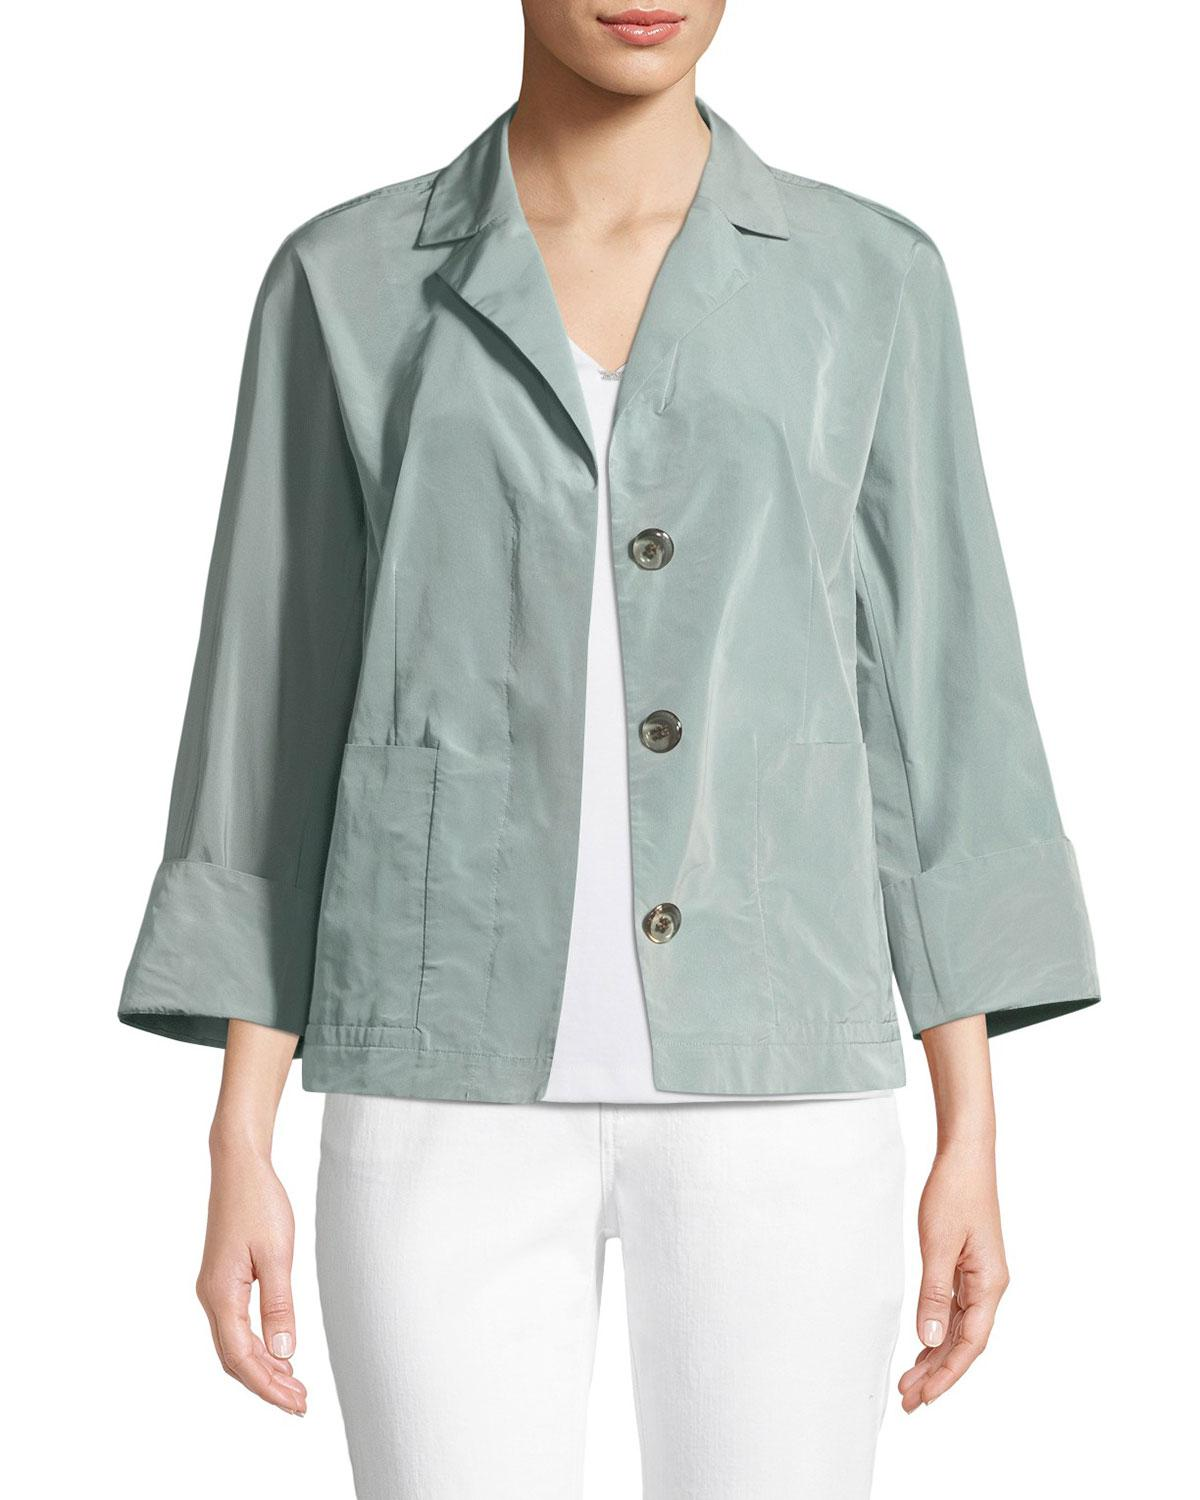 The Cheapest Shopping Online Lafayette 148 Quilted Button-Up Jacket Explore For Sale Cheap Sale New DWjEDB